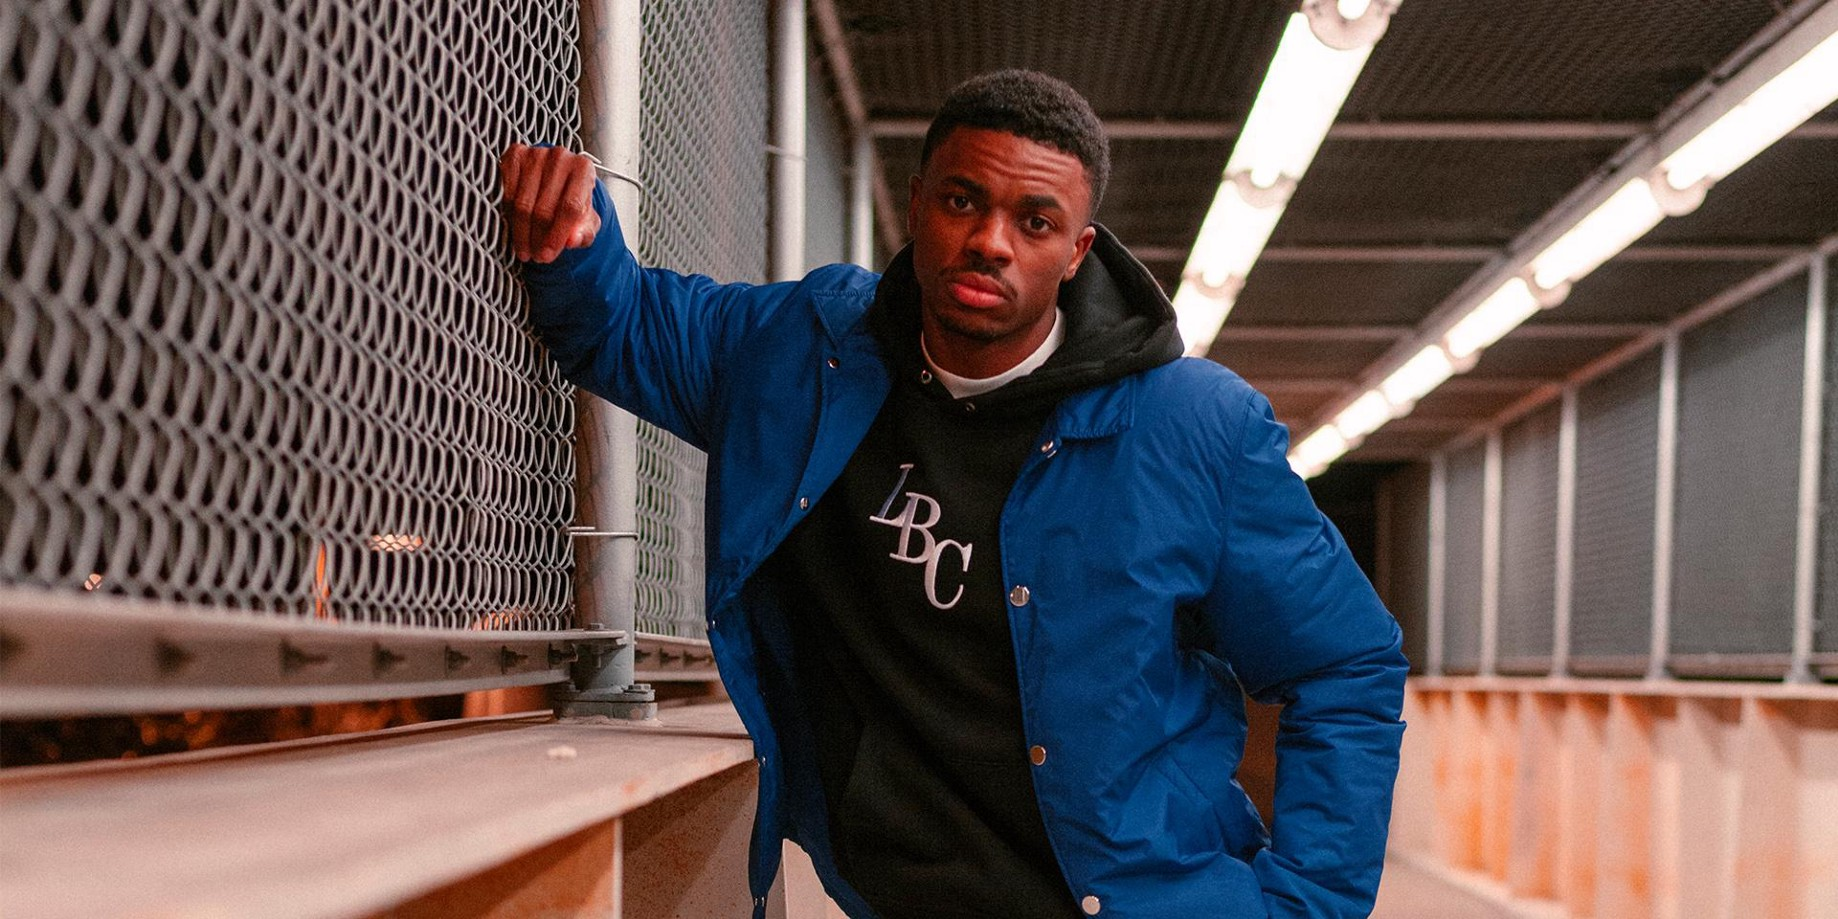 From Gangsta Rap to Art Rap: Vince Staples is a Different Kind of